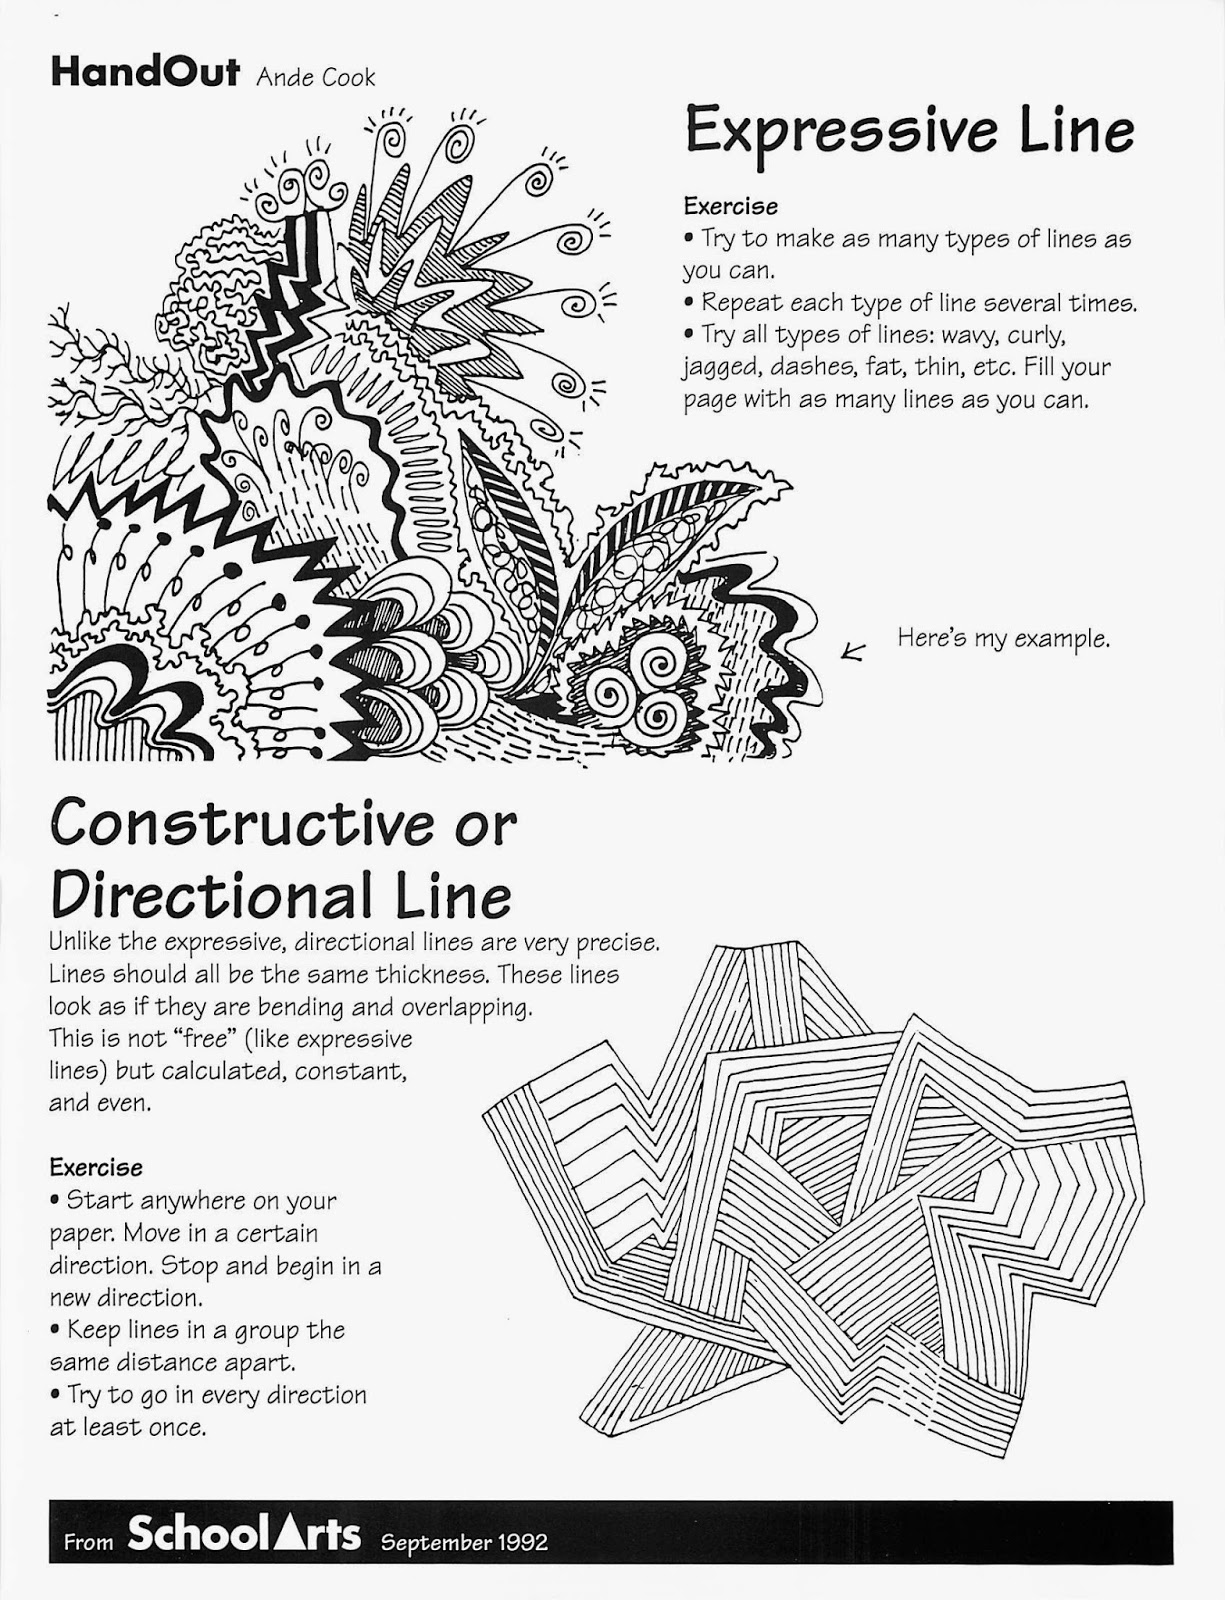 No Corner Suns Free Expressive Line Handout And